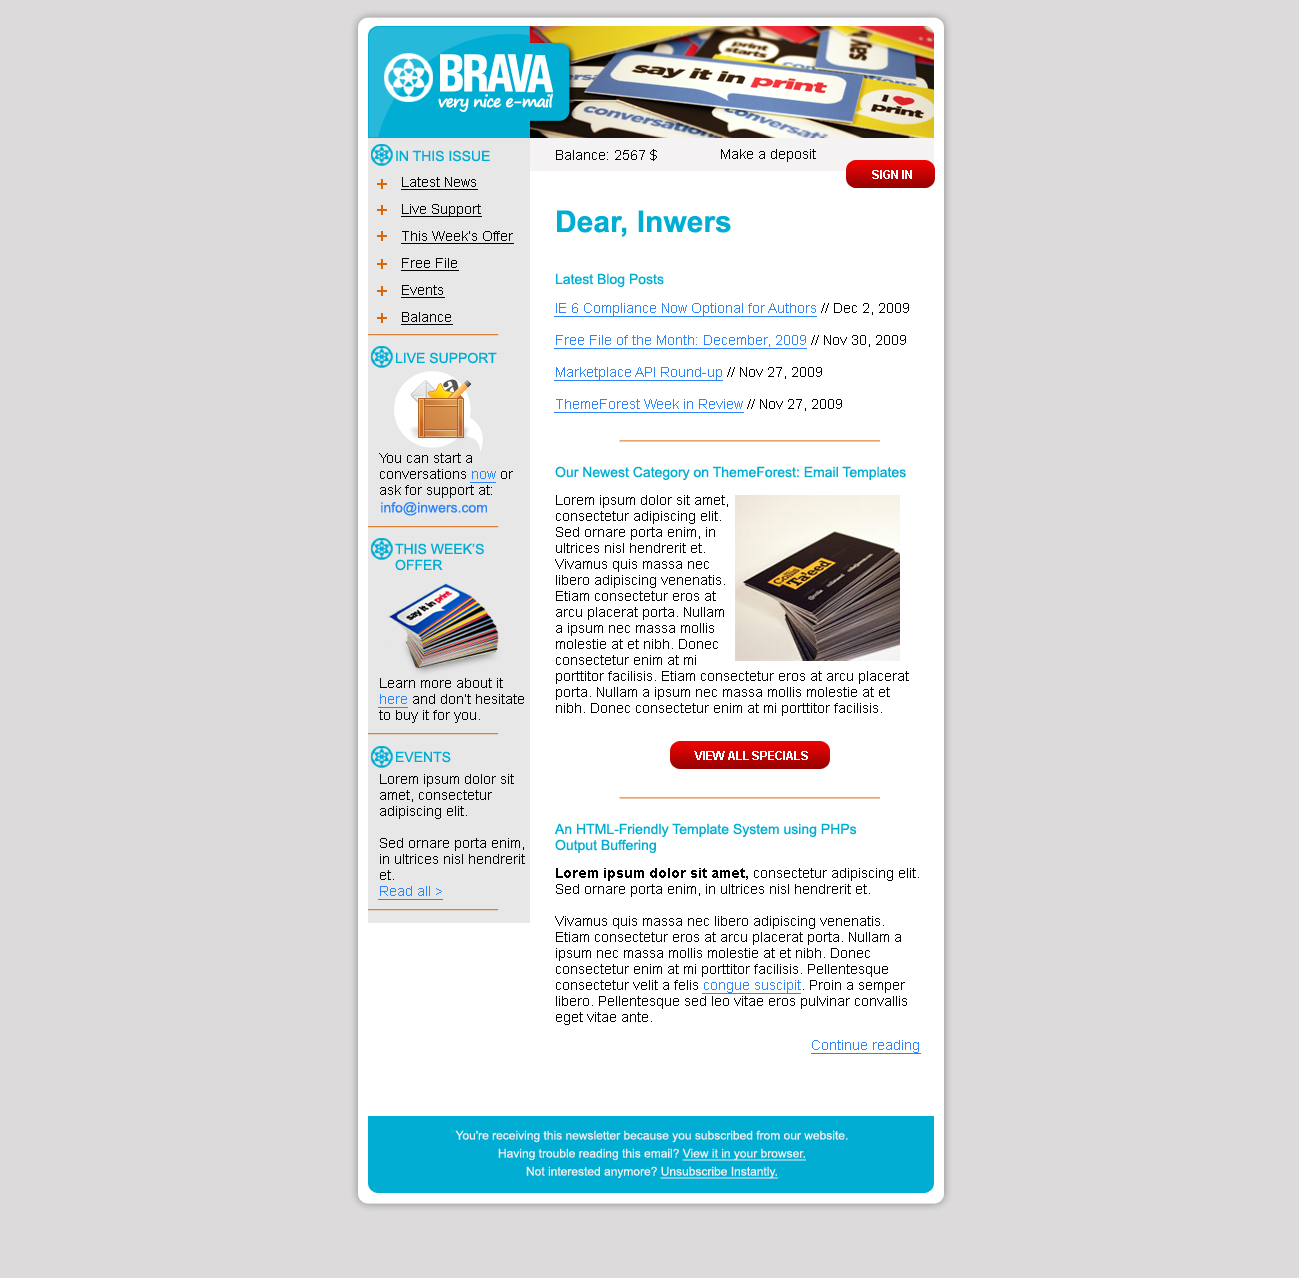 BRAVA - a corporate nice e-mail - Inwers - Brava Sky Blue